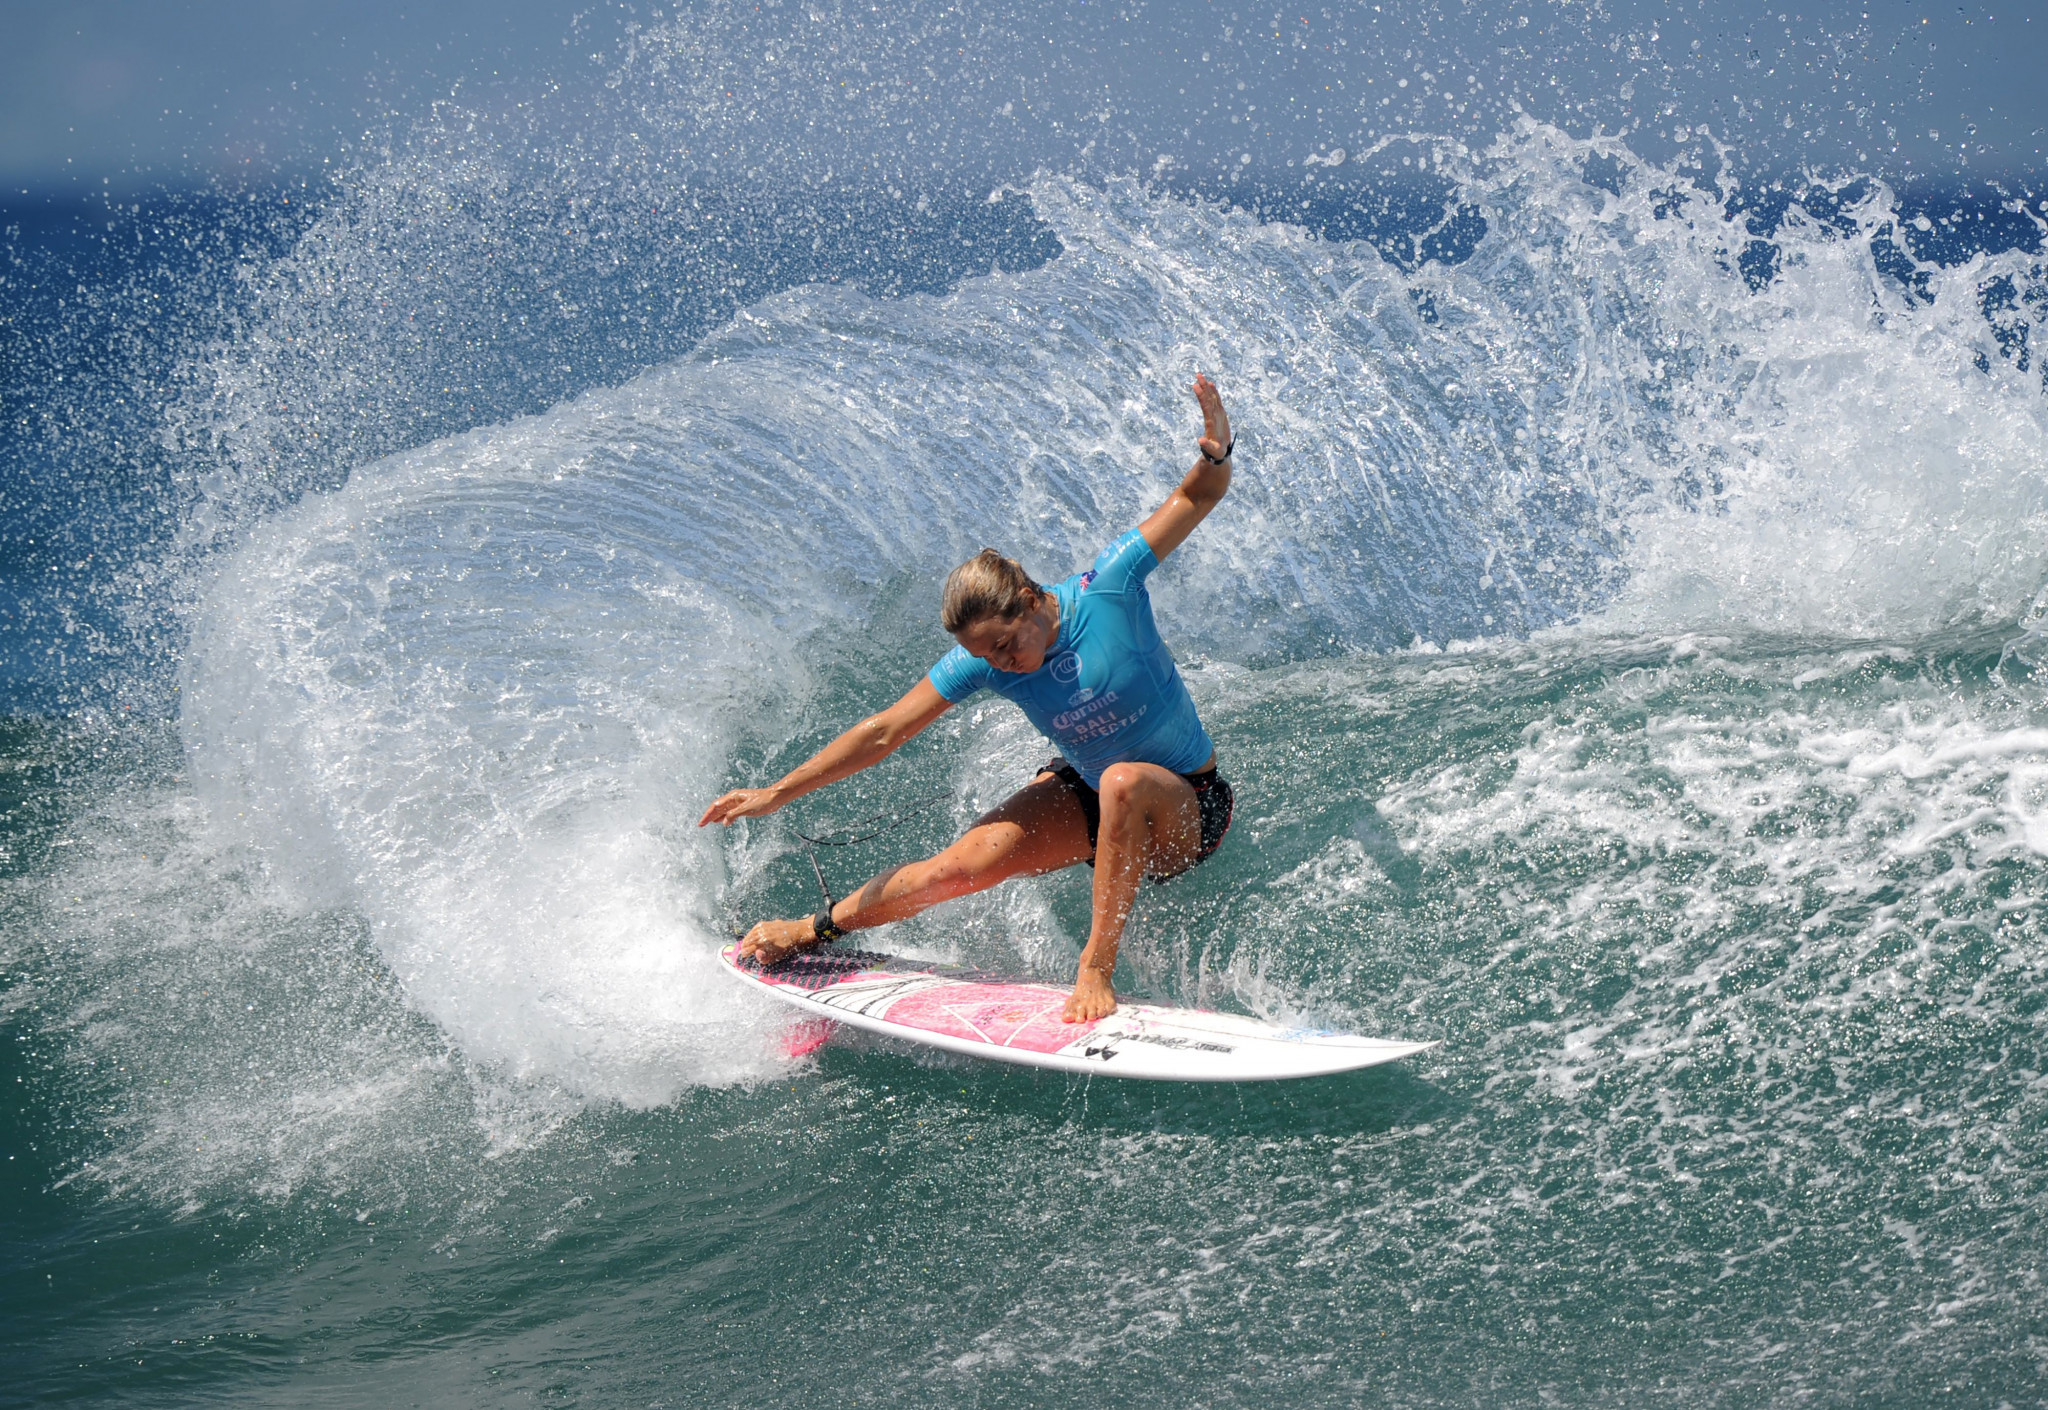 Australia's Sally Fitzgibbons will be among the favourites for gold at the International Surfing Association World Surfing Games in September ©Getty Images